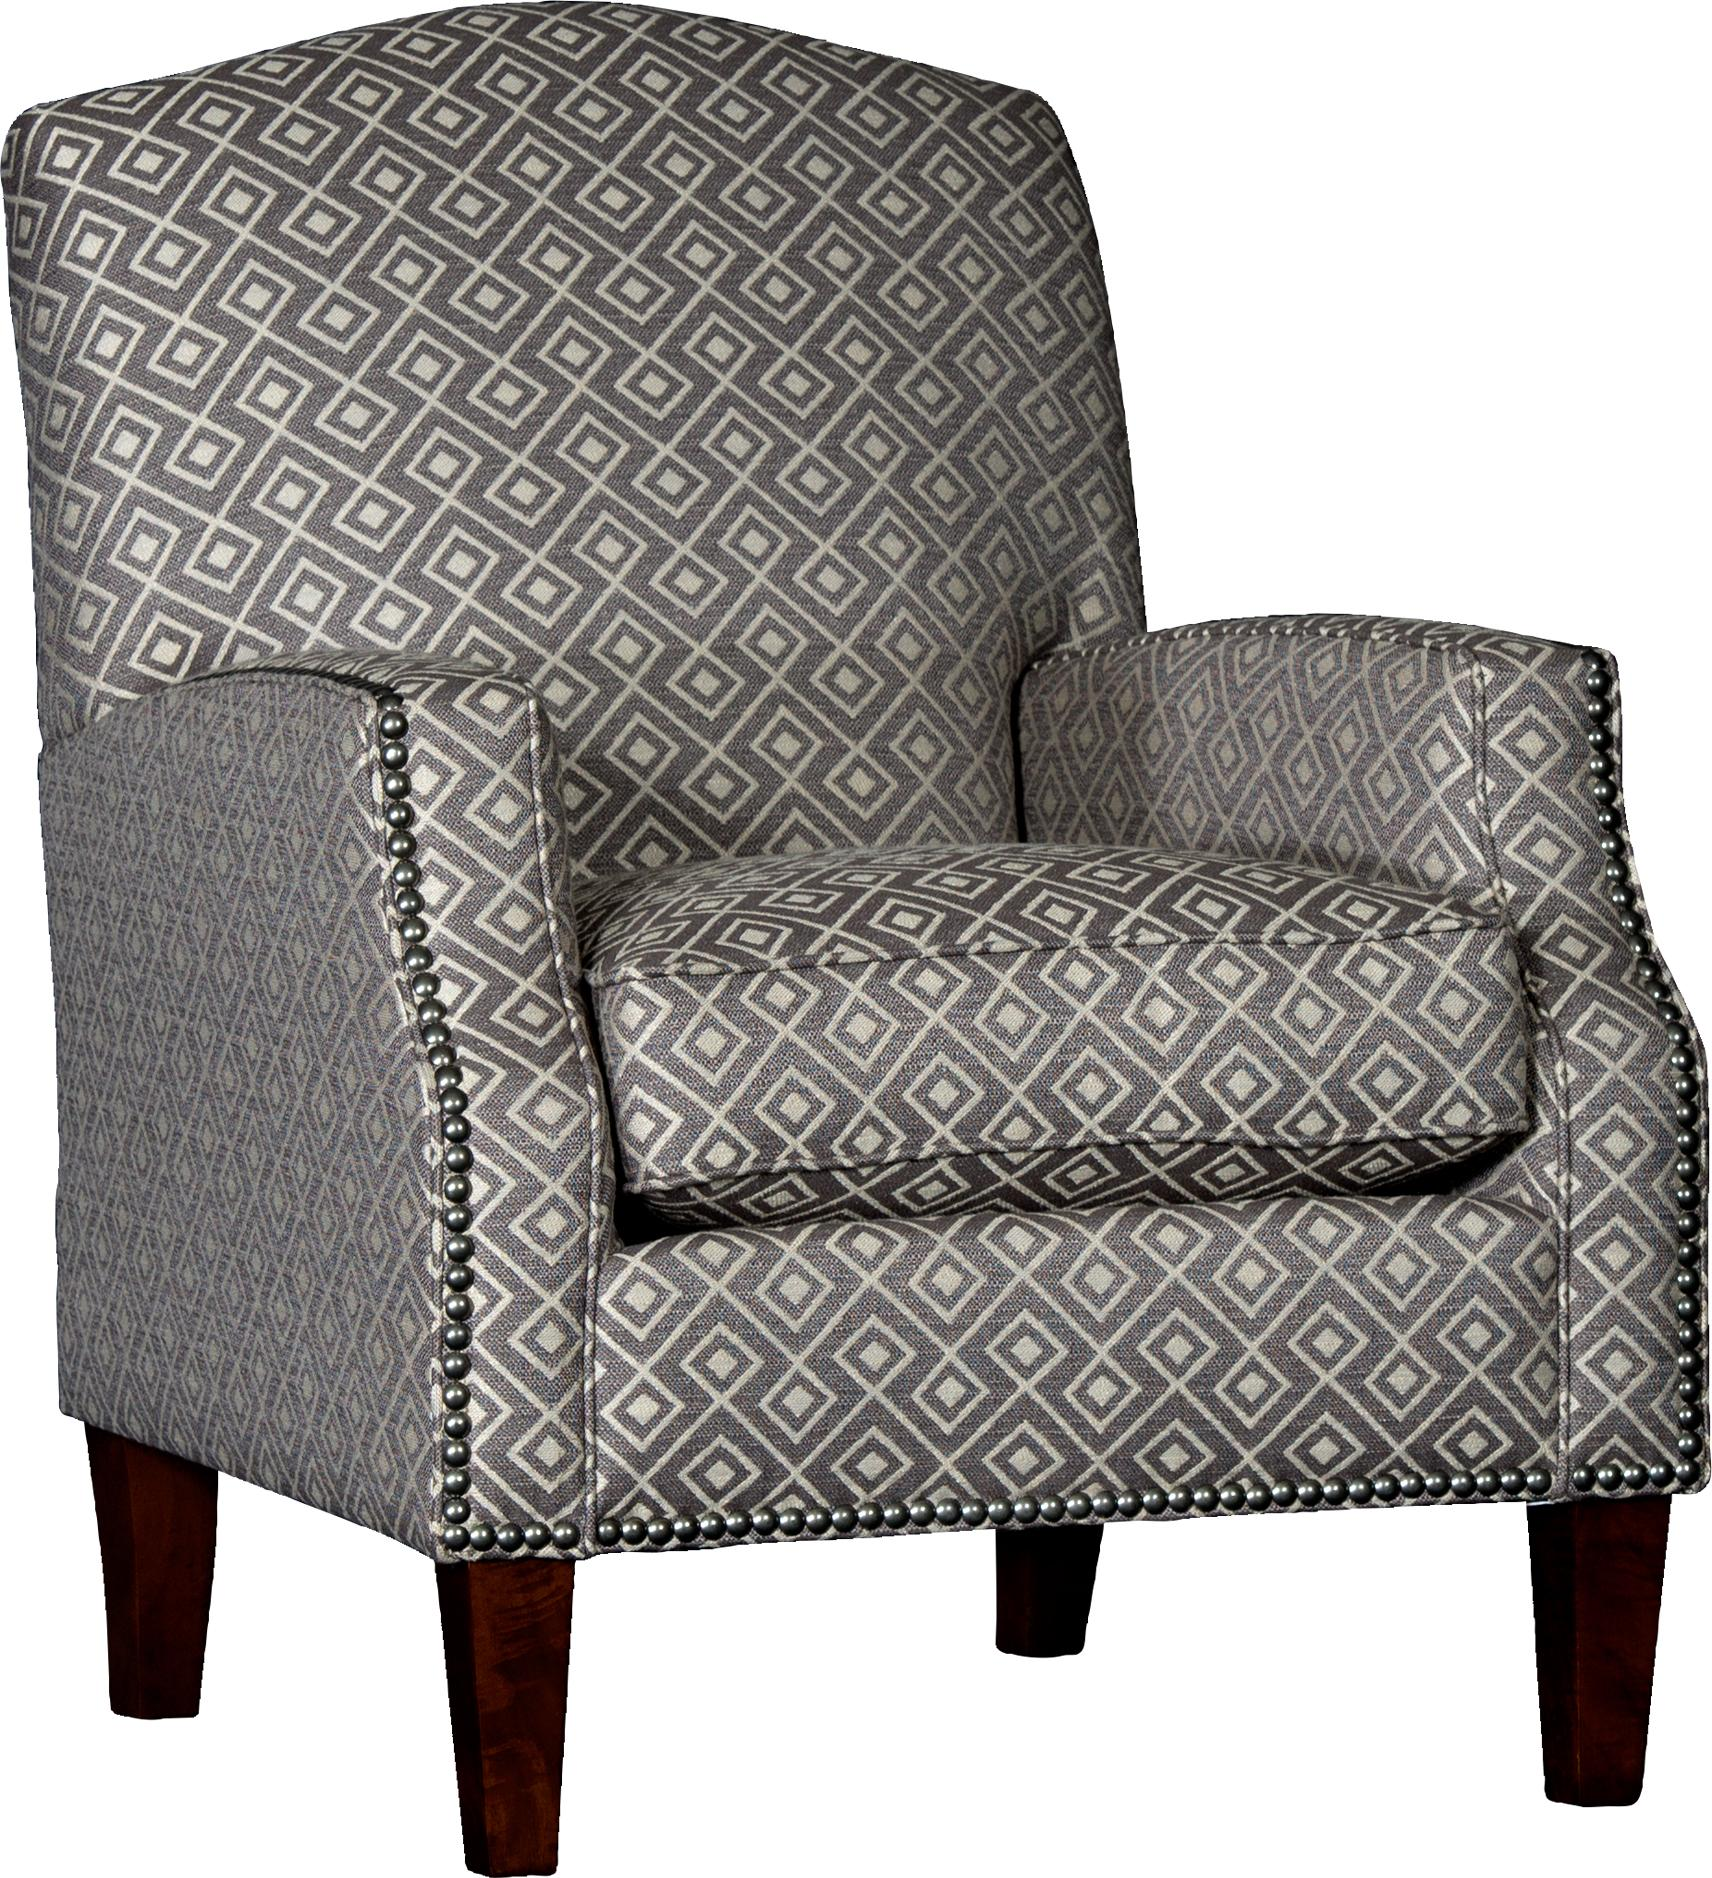 3725 Chair by Mayo at Story & Lee Furniture